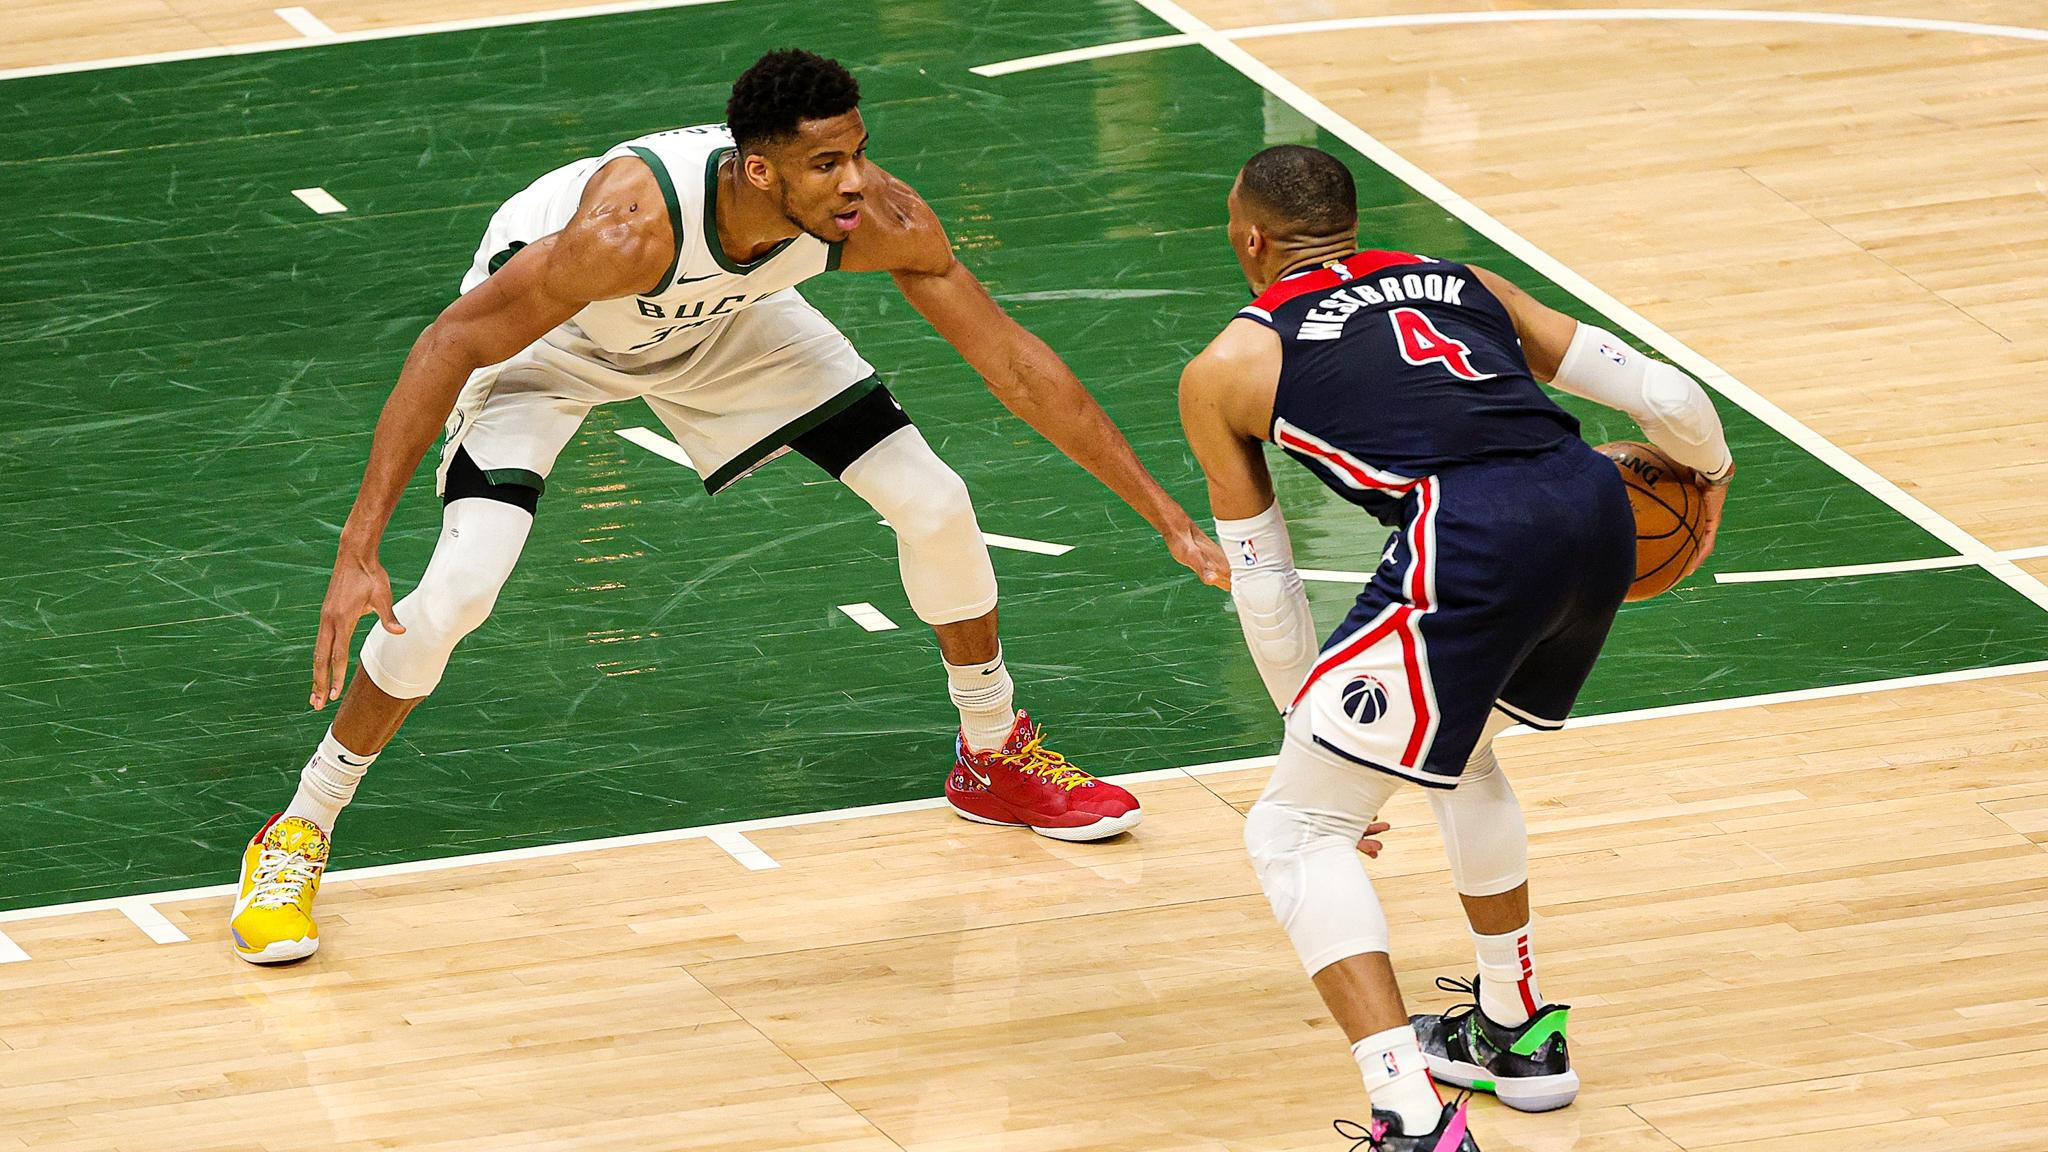 Highlights: Bucks 135 - Wizards 134 | 5.5.21